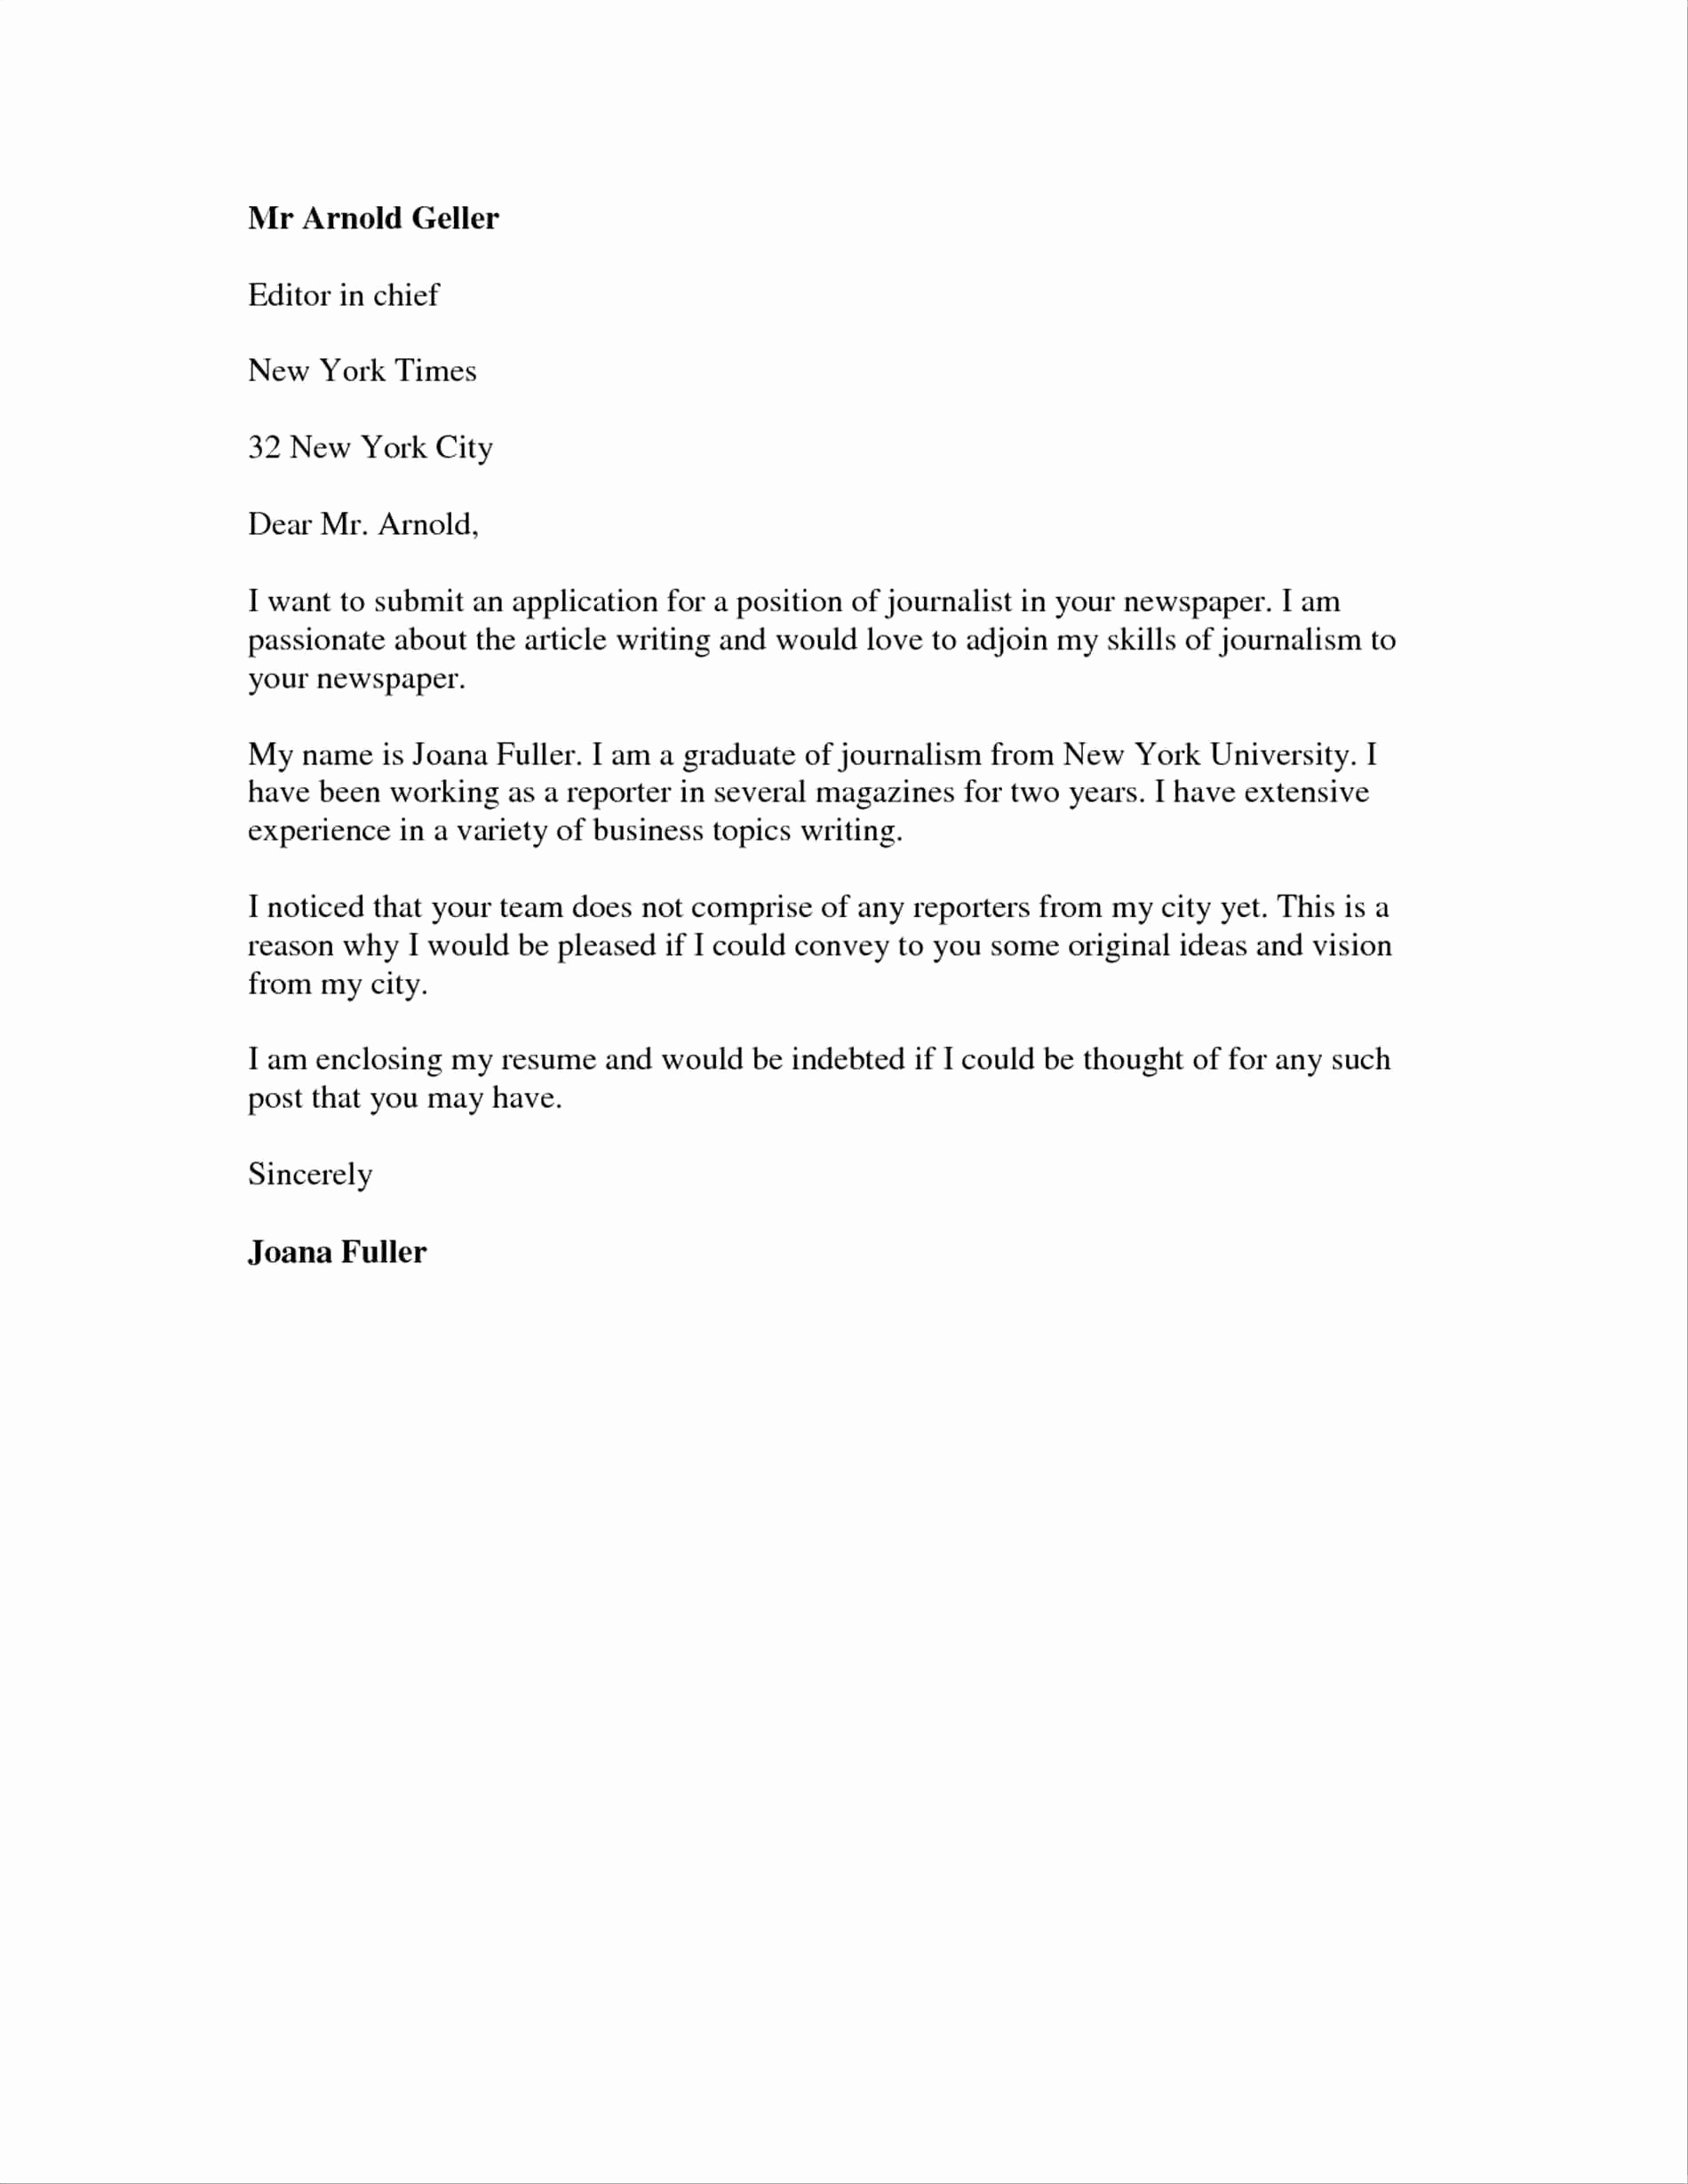 Free Section 609 Credit Dispute Letter Template - Job Letter Template Awesome Credit Report Dispute Letter Template